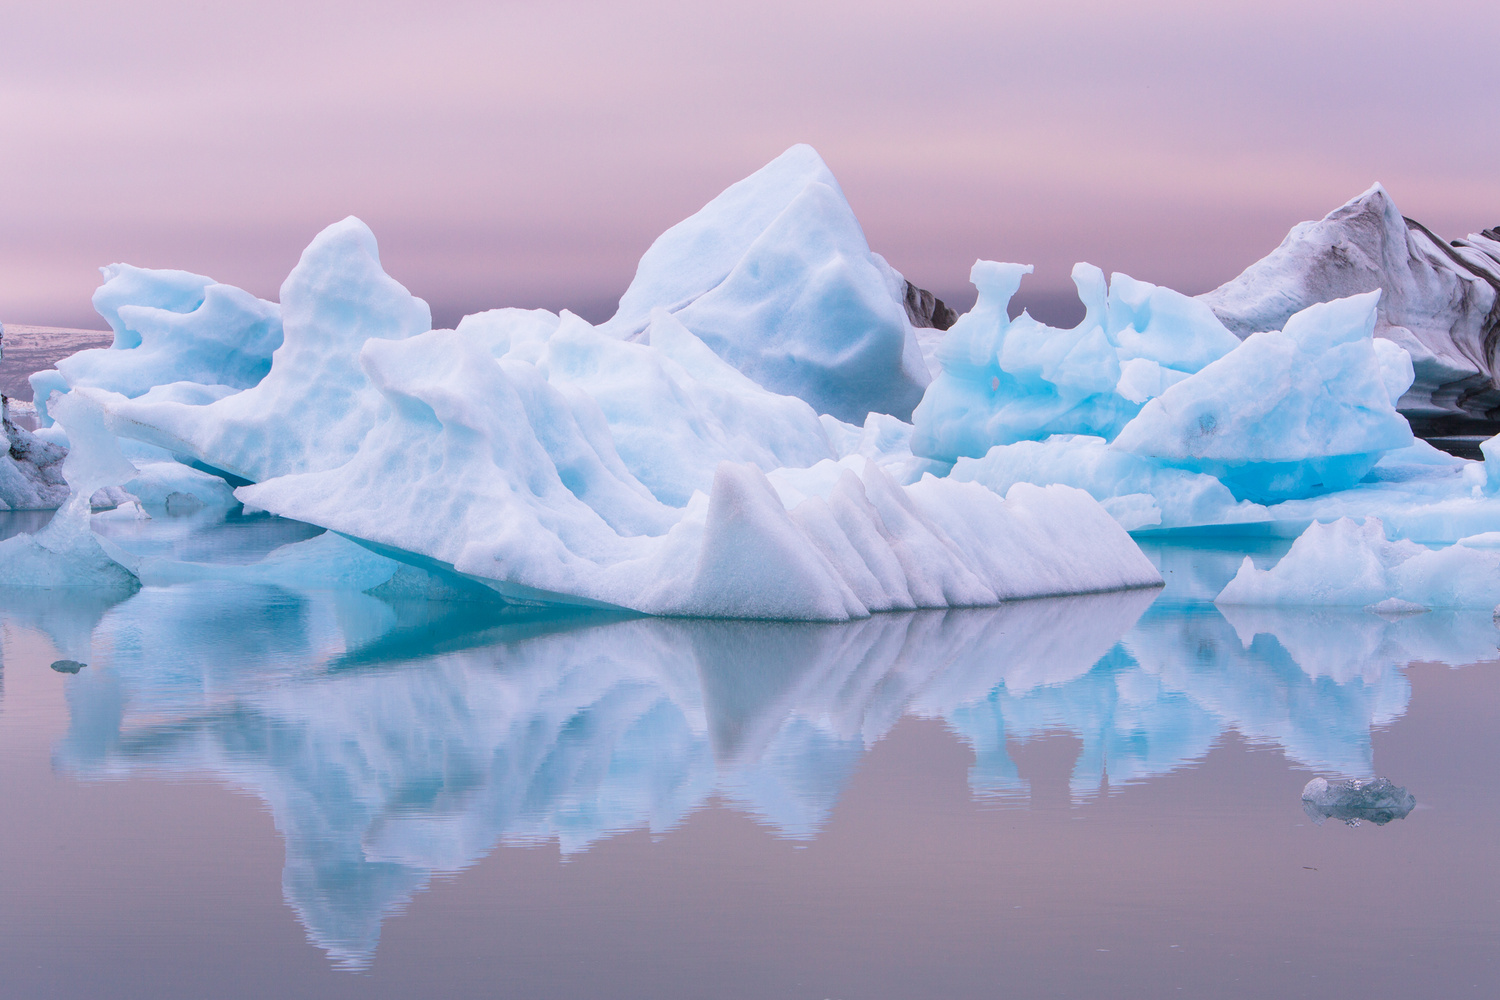 Icy Calm by Thomas Even